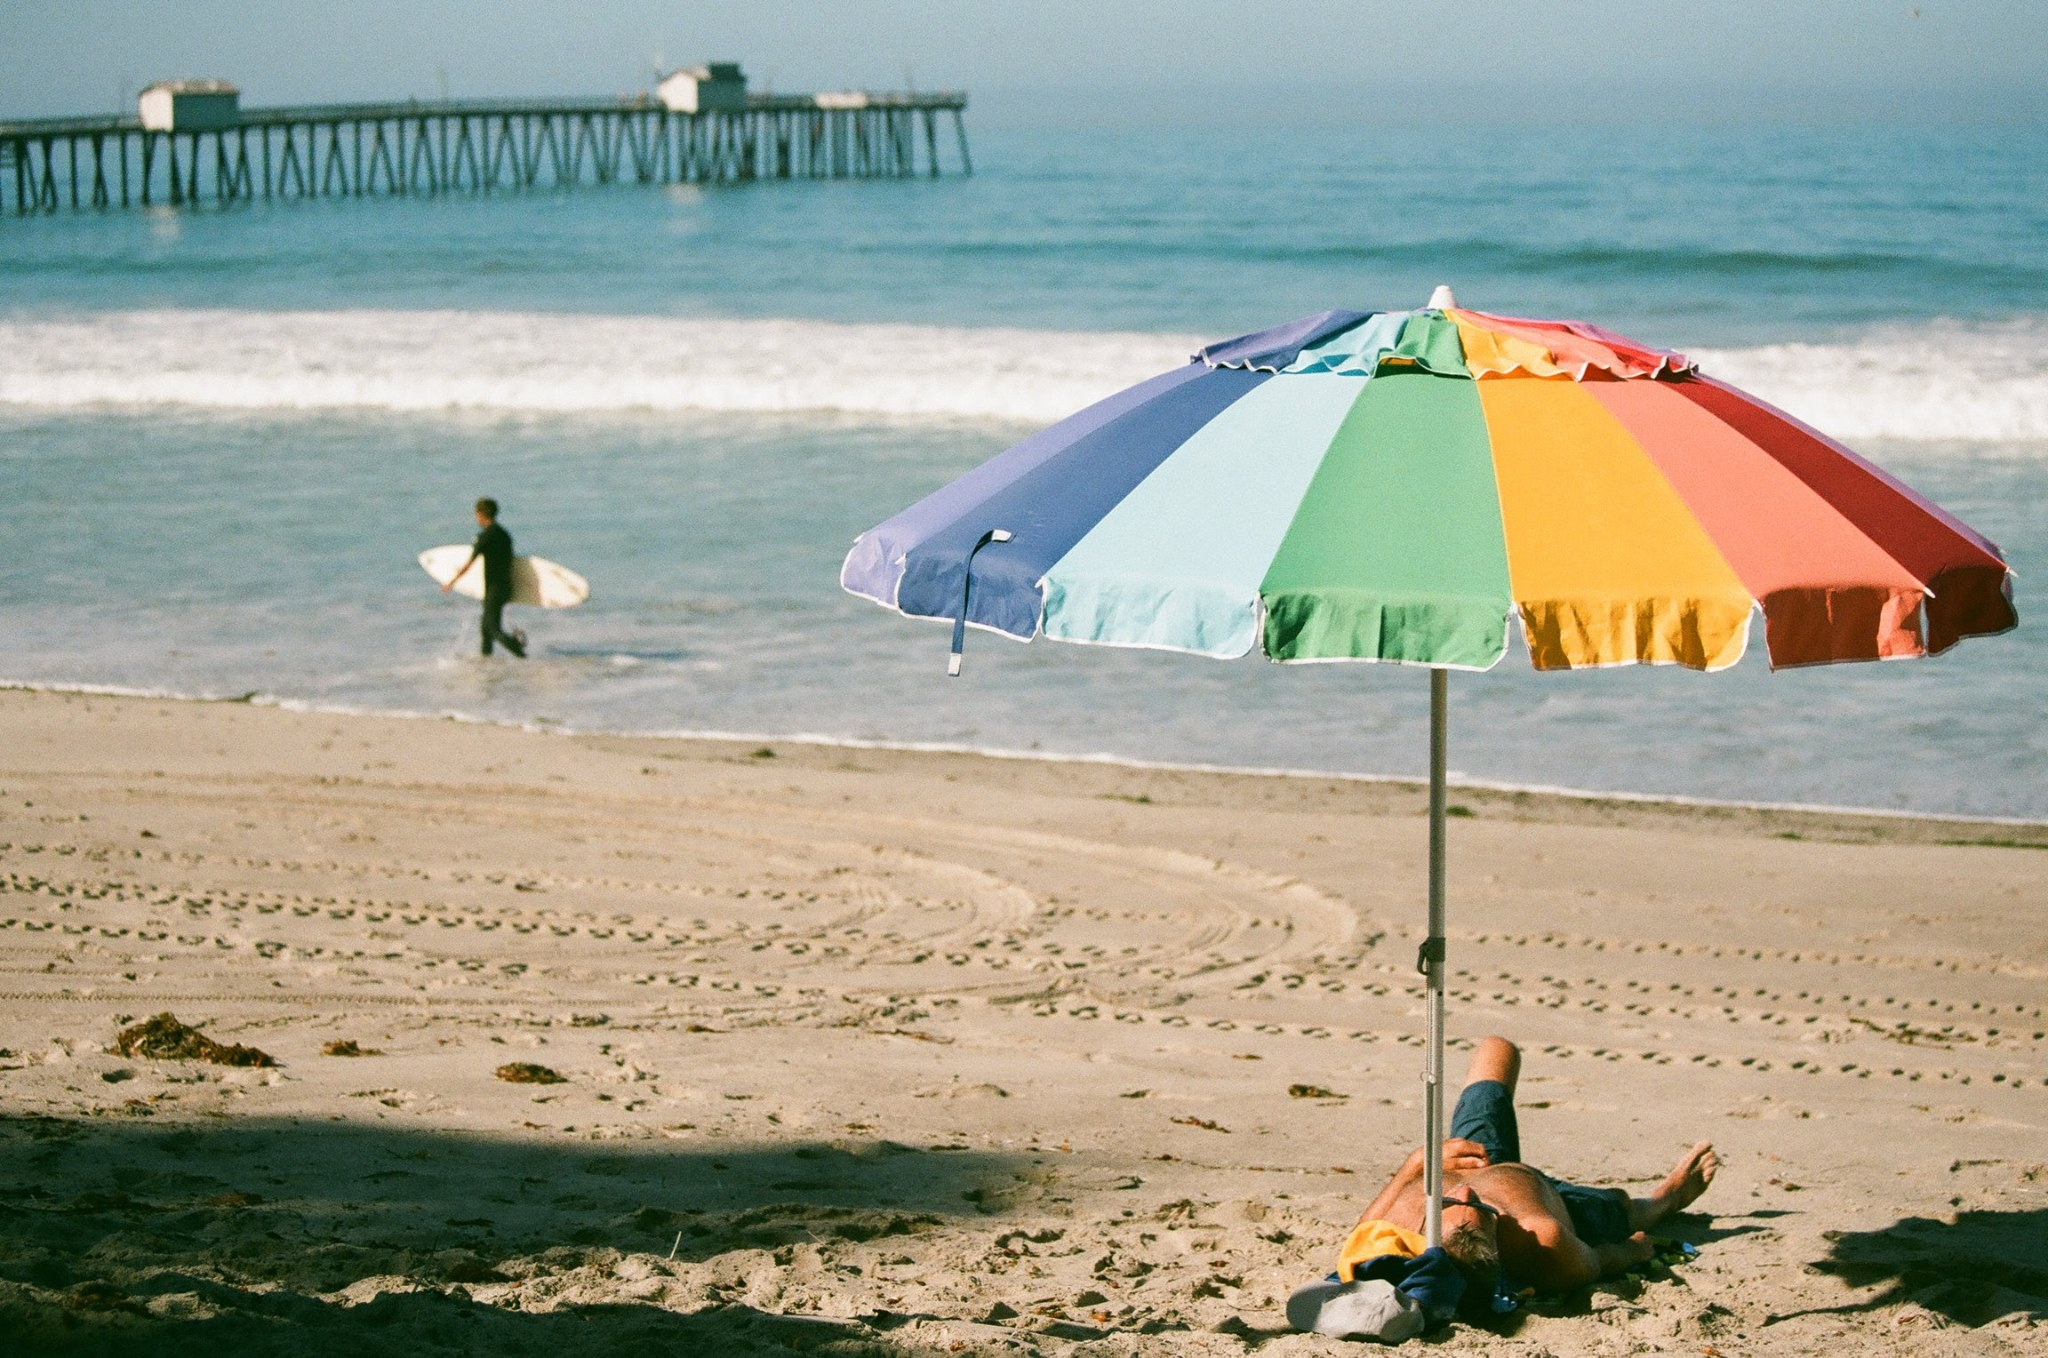 Fujicolor Canon 1V — at San Clemente Beach and Pier